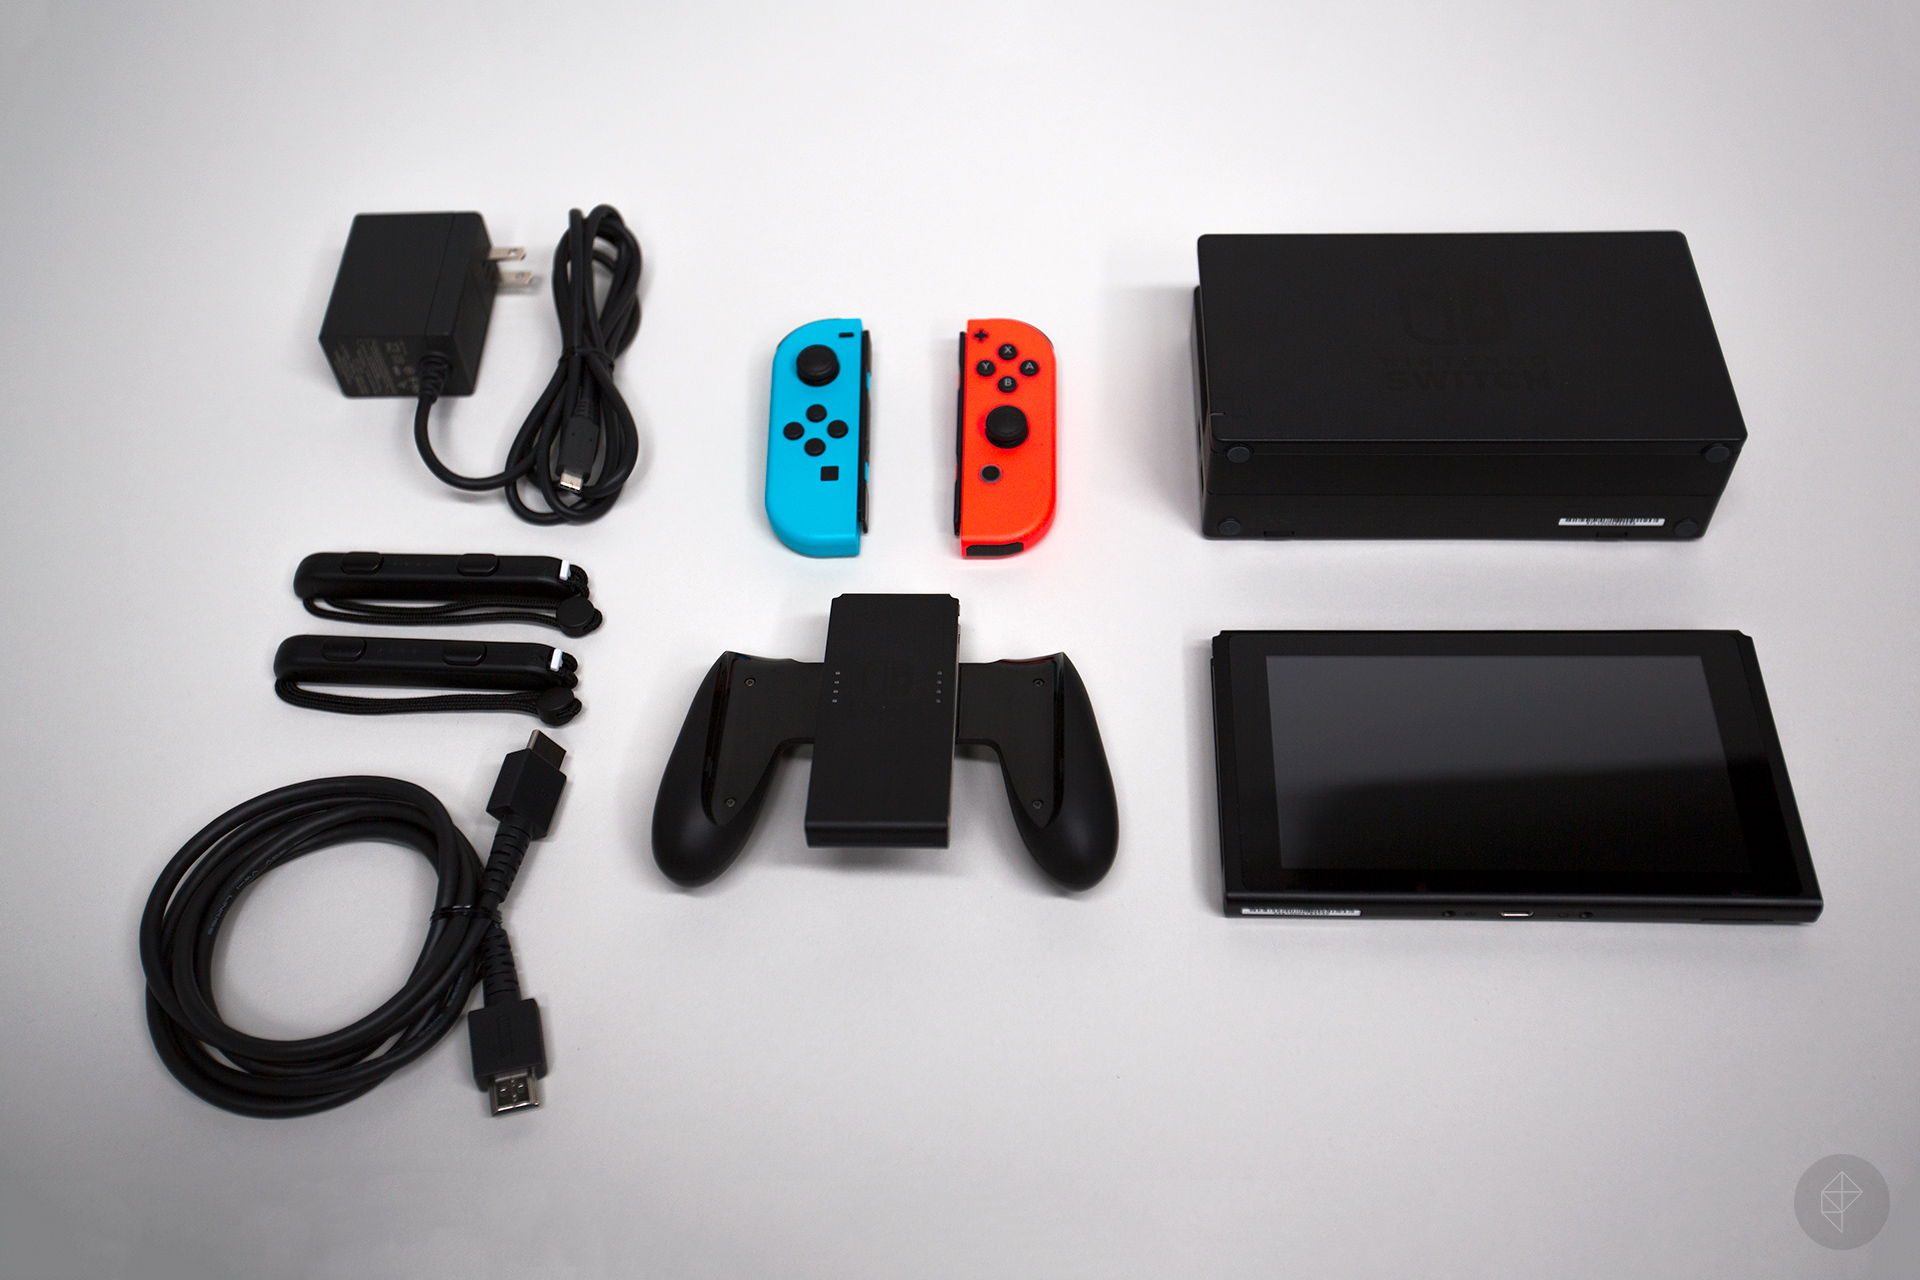 Buying a Nintendo Switch? Here's what you should pick up alongside it